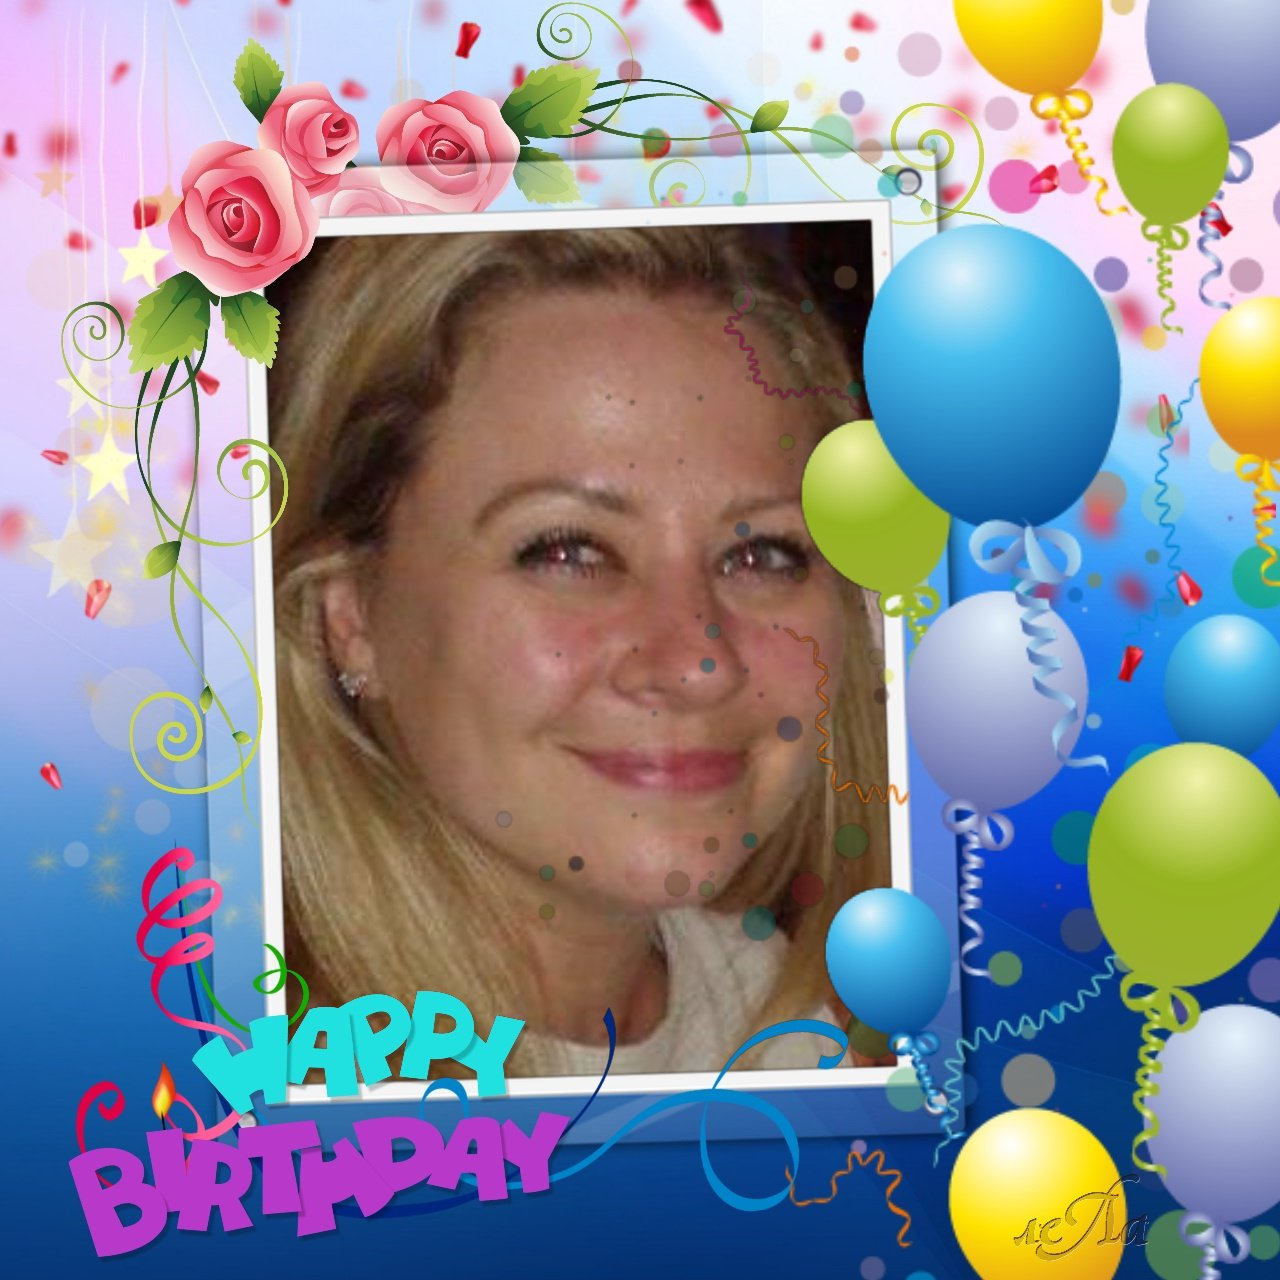 Wishing My friend Adele a very happy birthday today hope she has a great day xx